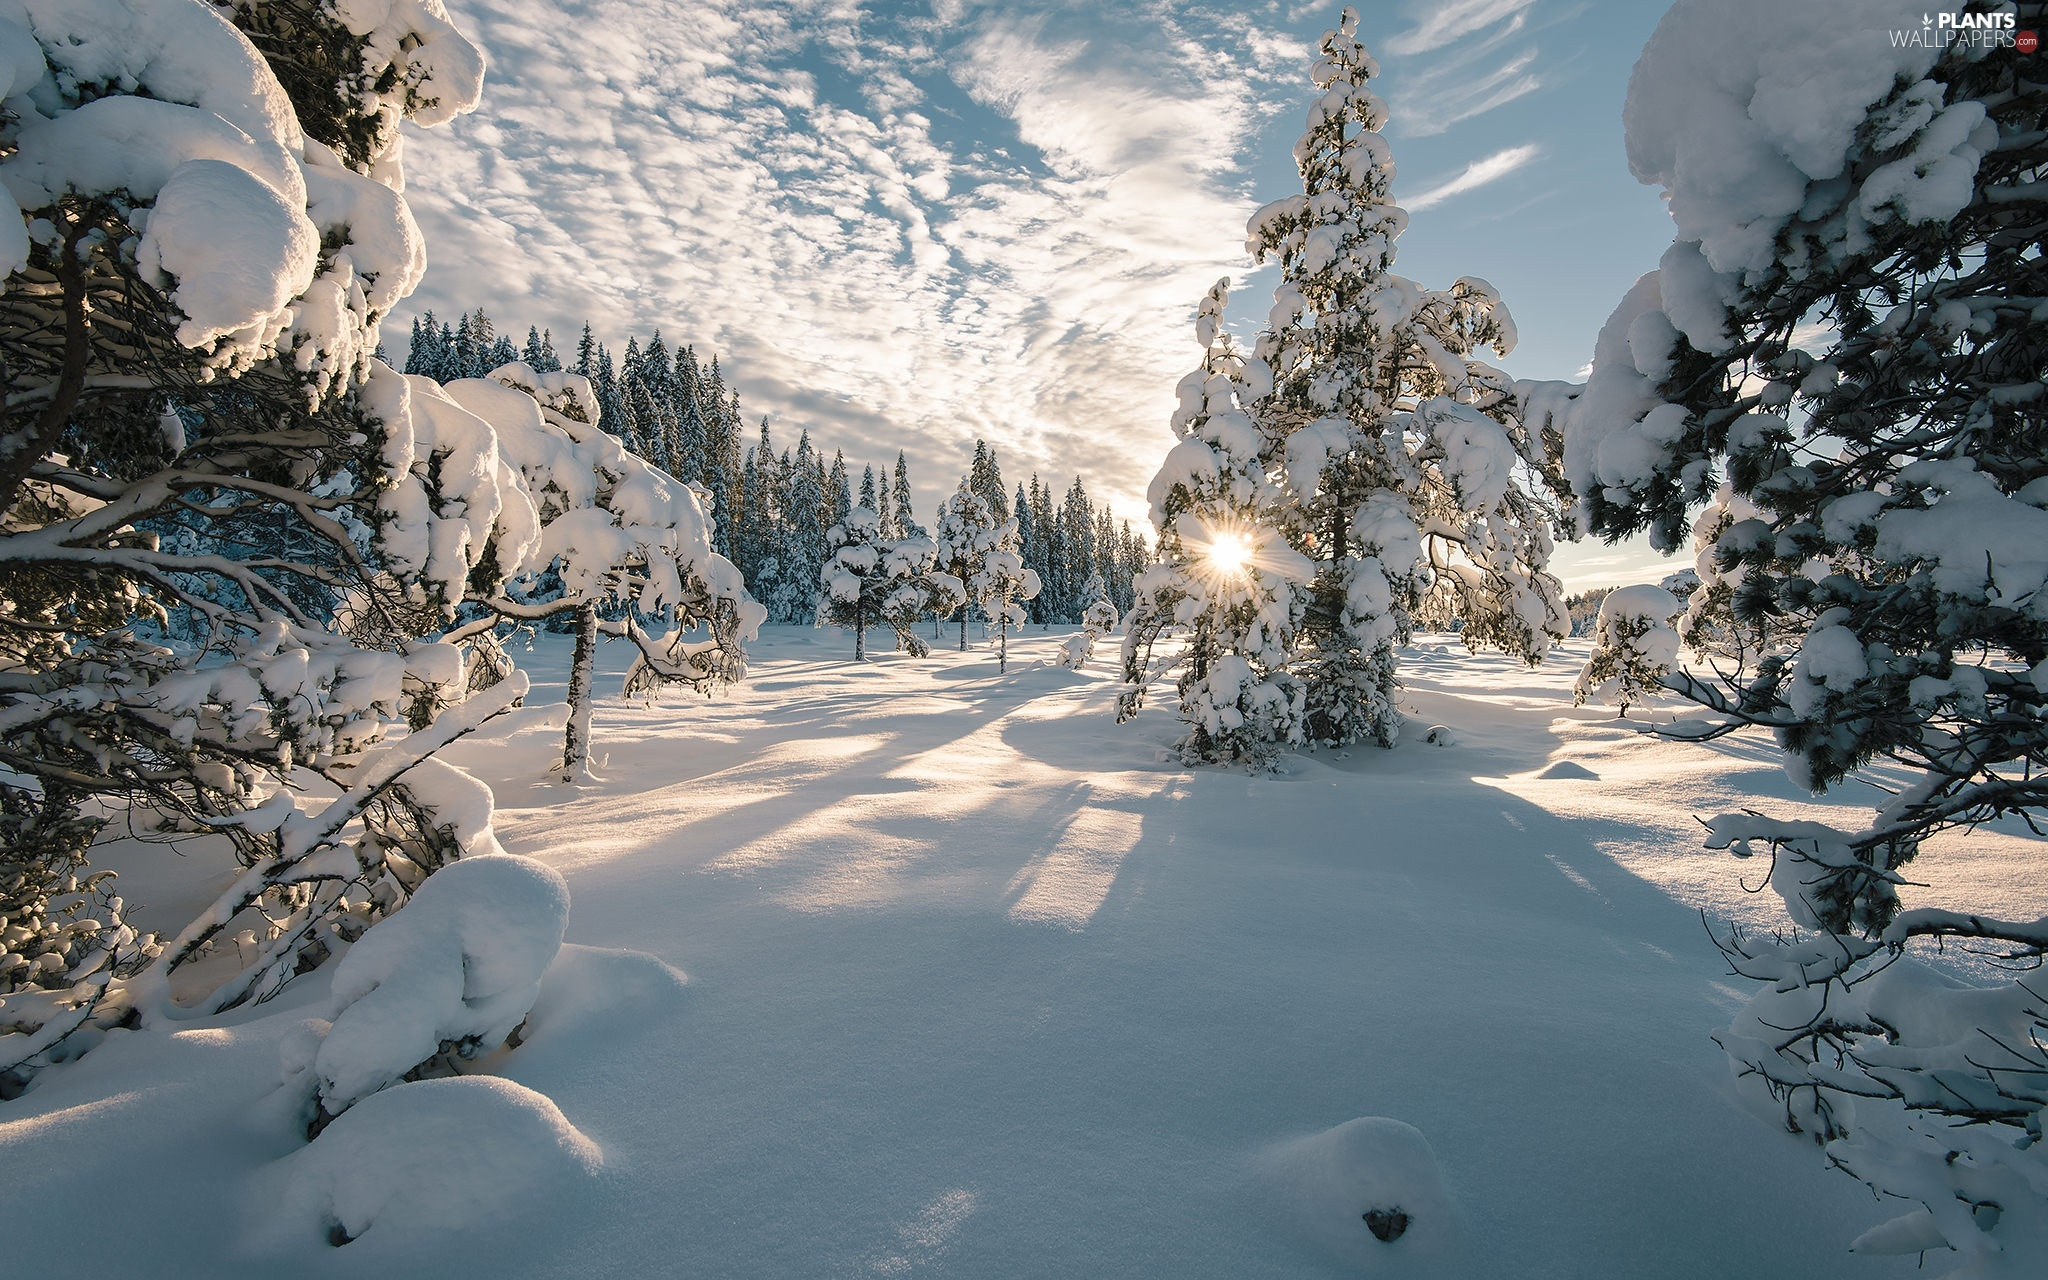 trees, winter, snow, rays of the Sun, viewes, Snowy